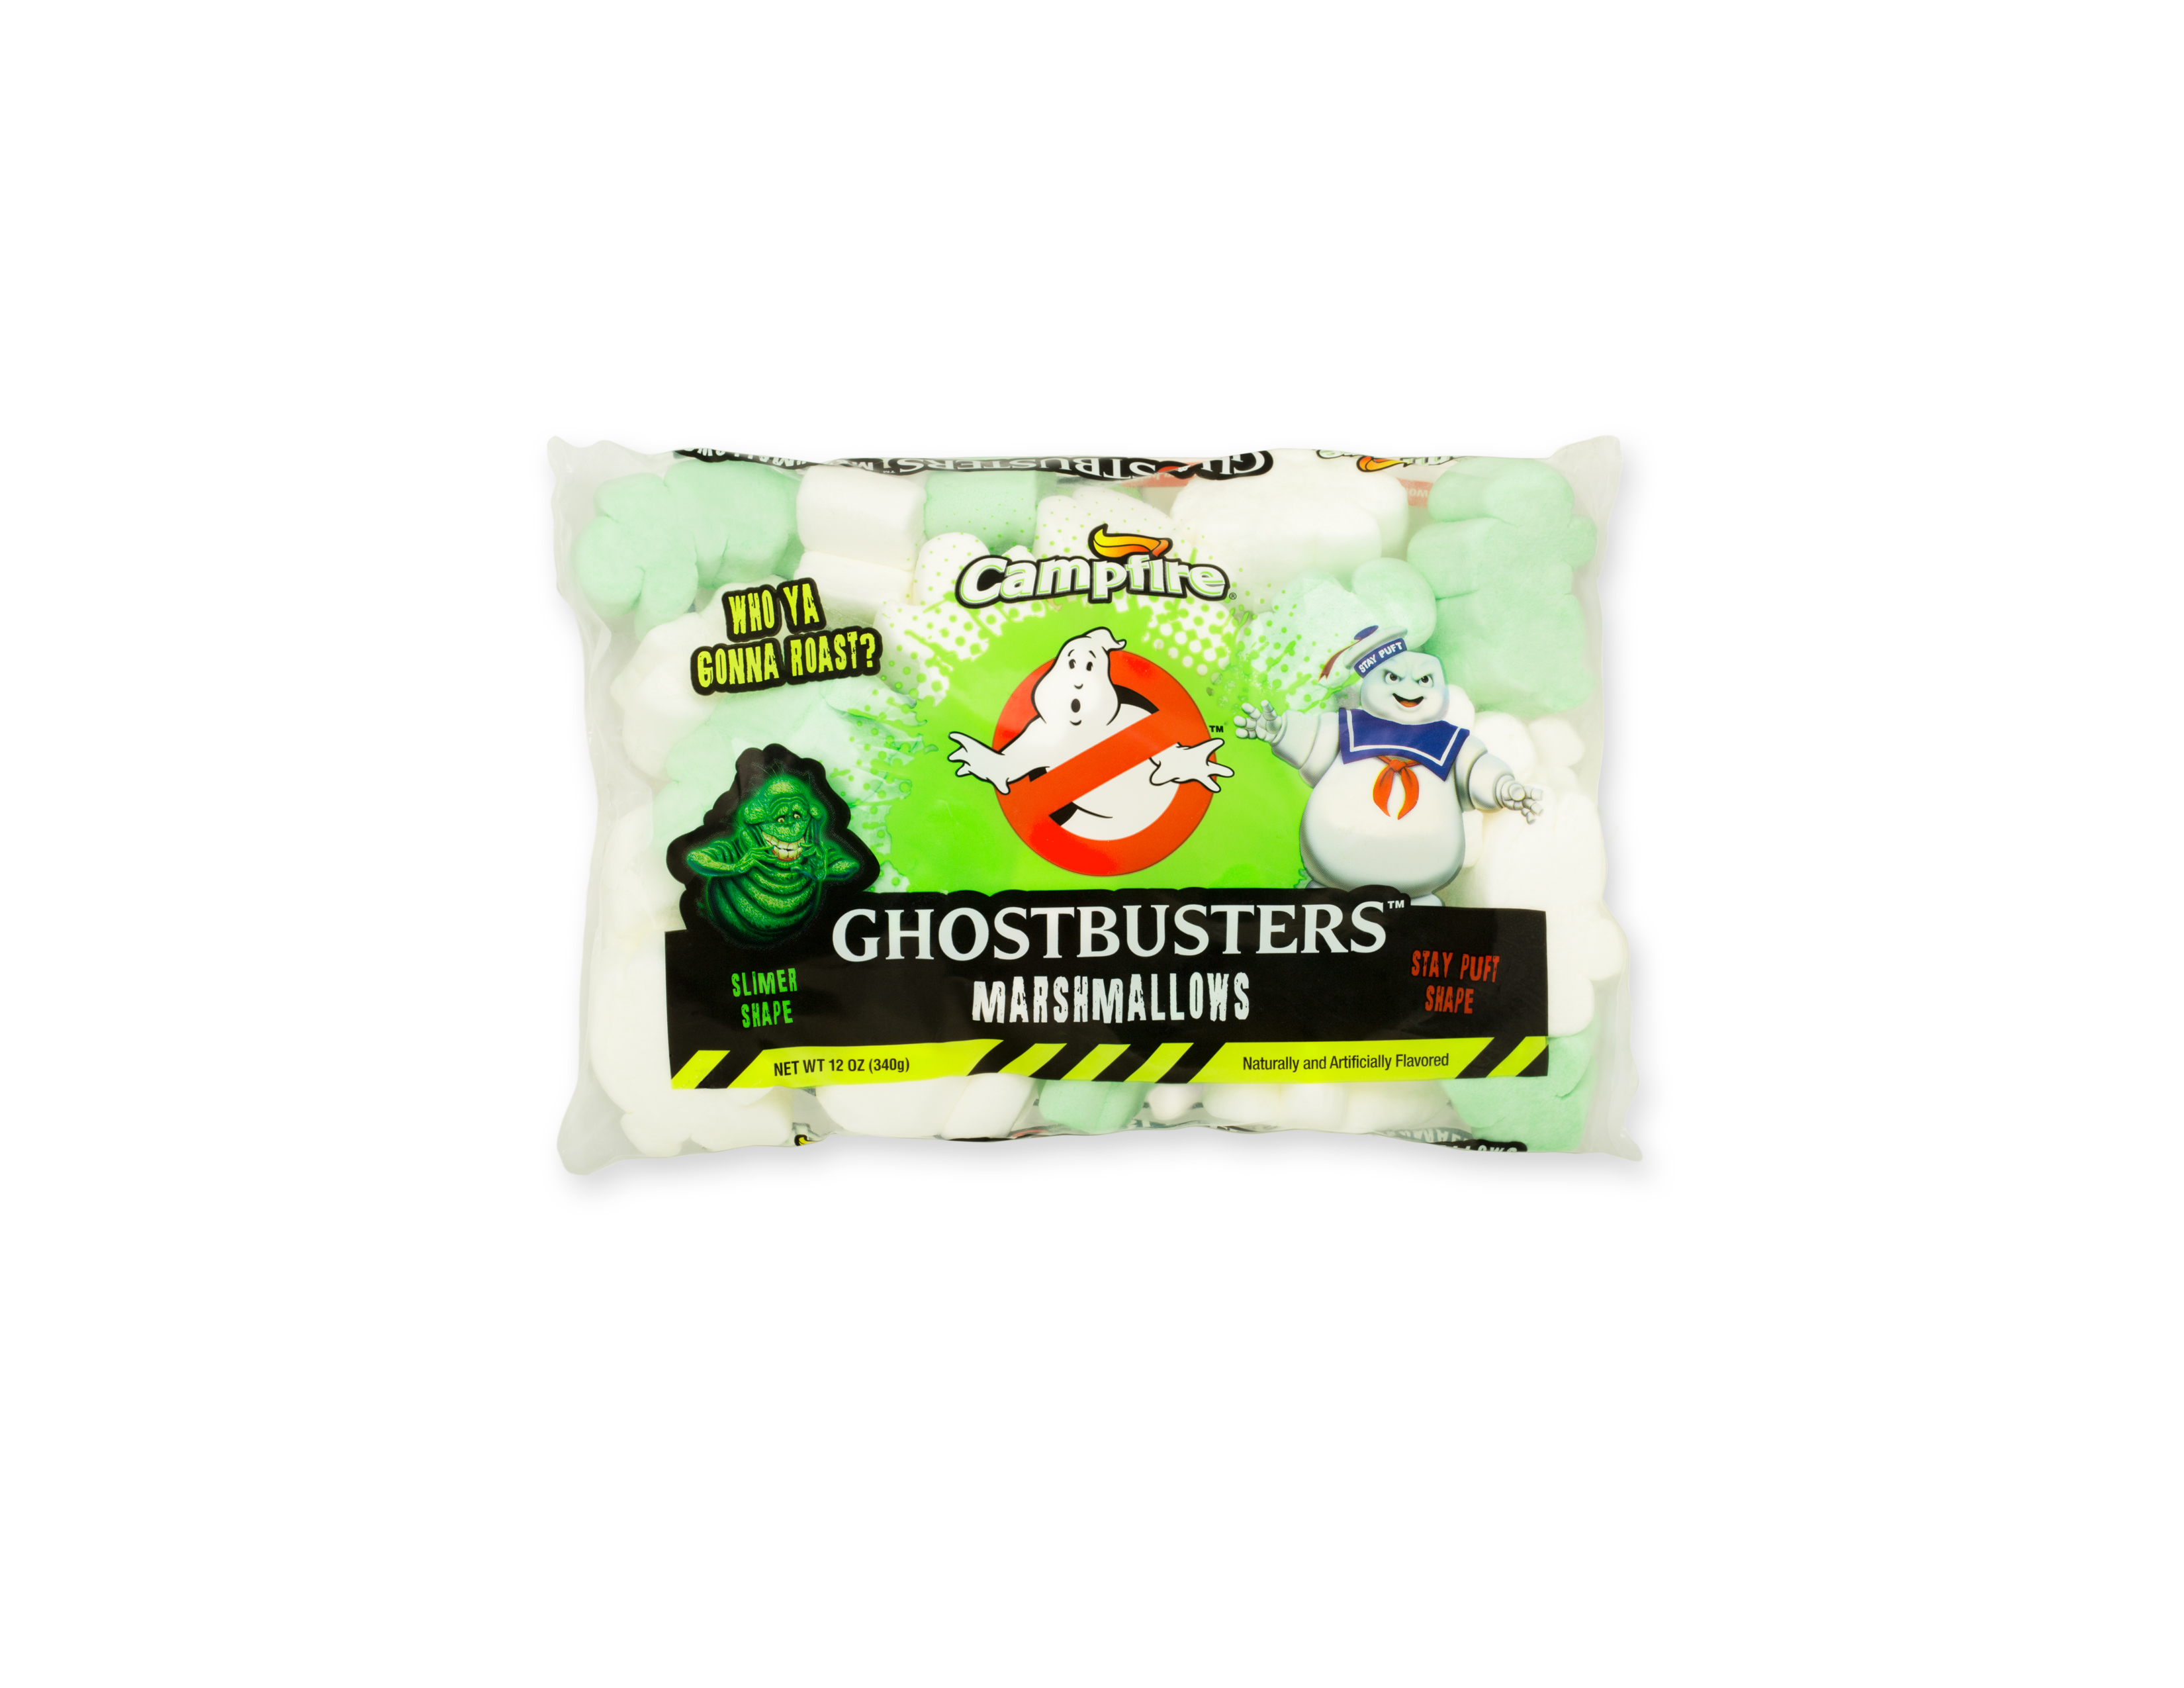 Campfire Ghostbusters product package